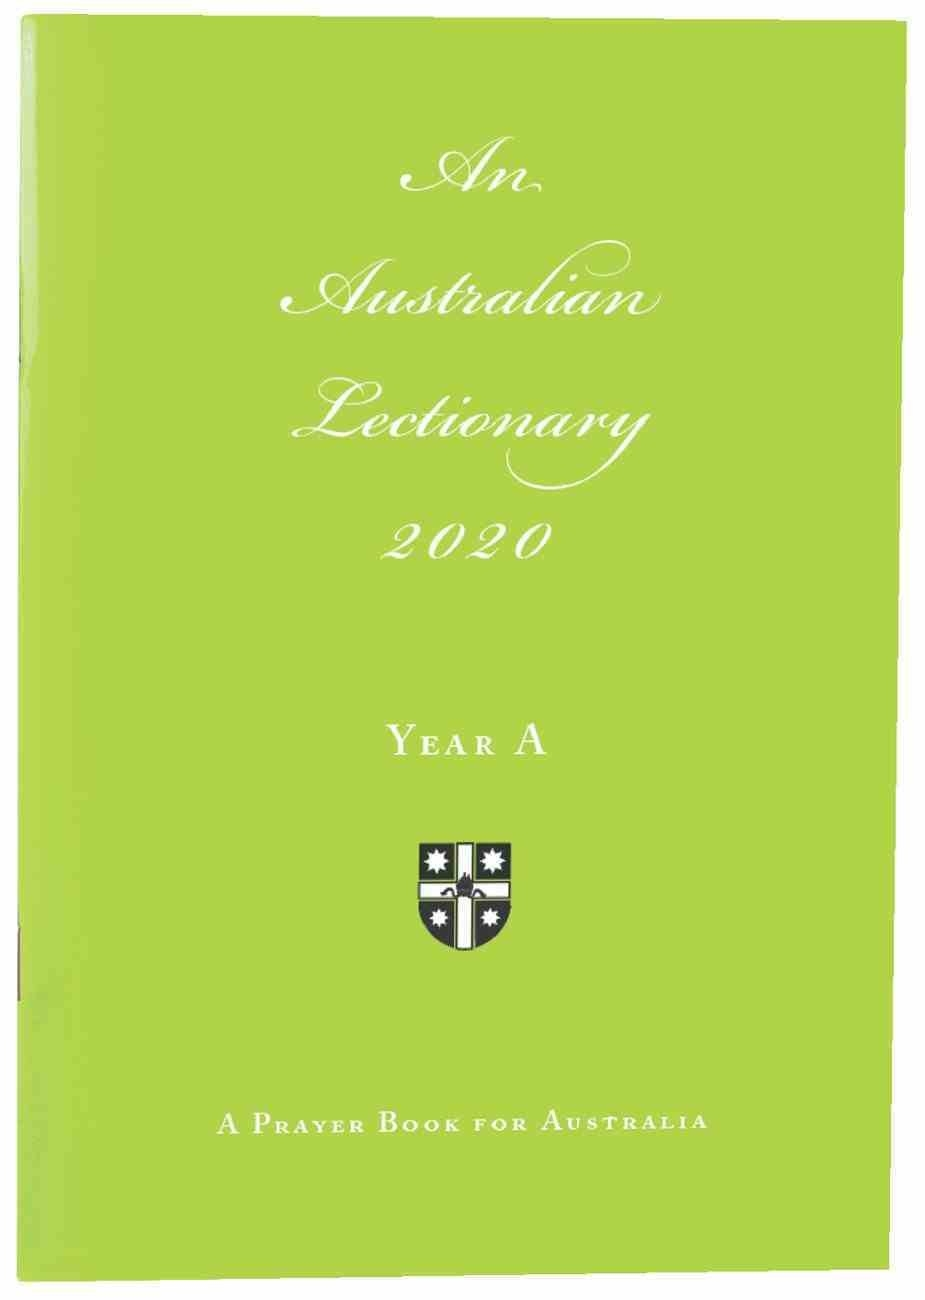 2020 Australian Lectionary 2020 Anglican Prayer Book For Australia (Year A)  Lectionary Readings For 2020